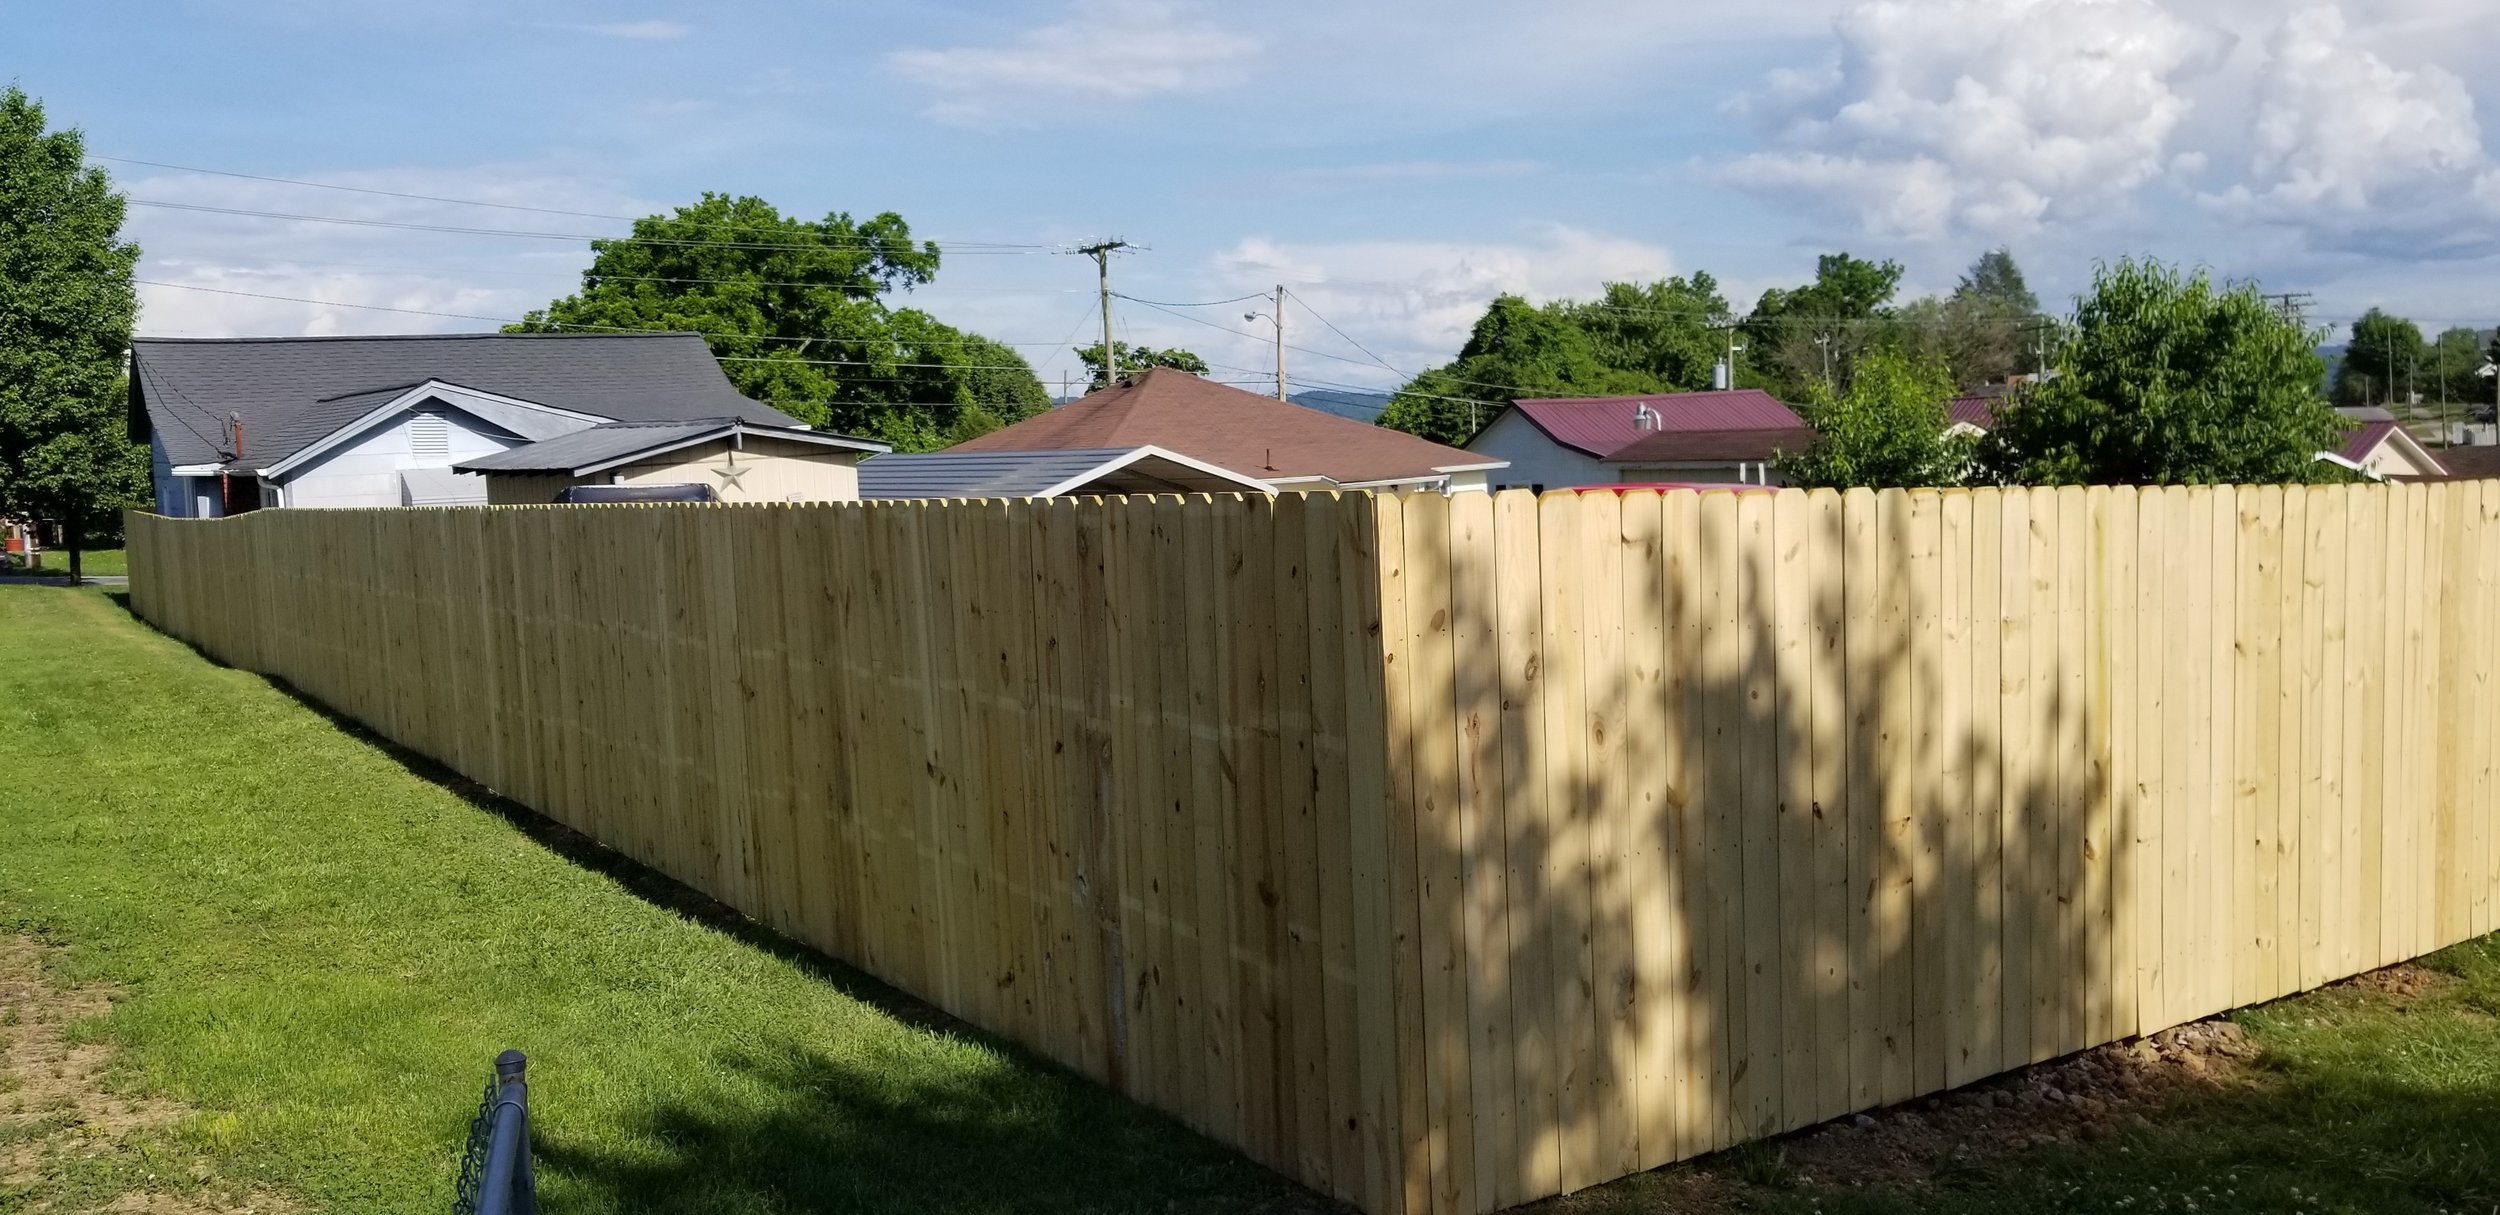 New Wood Privacy Fence (Kingsport, Tn)